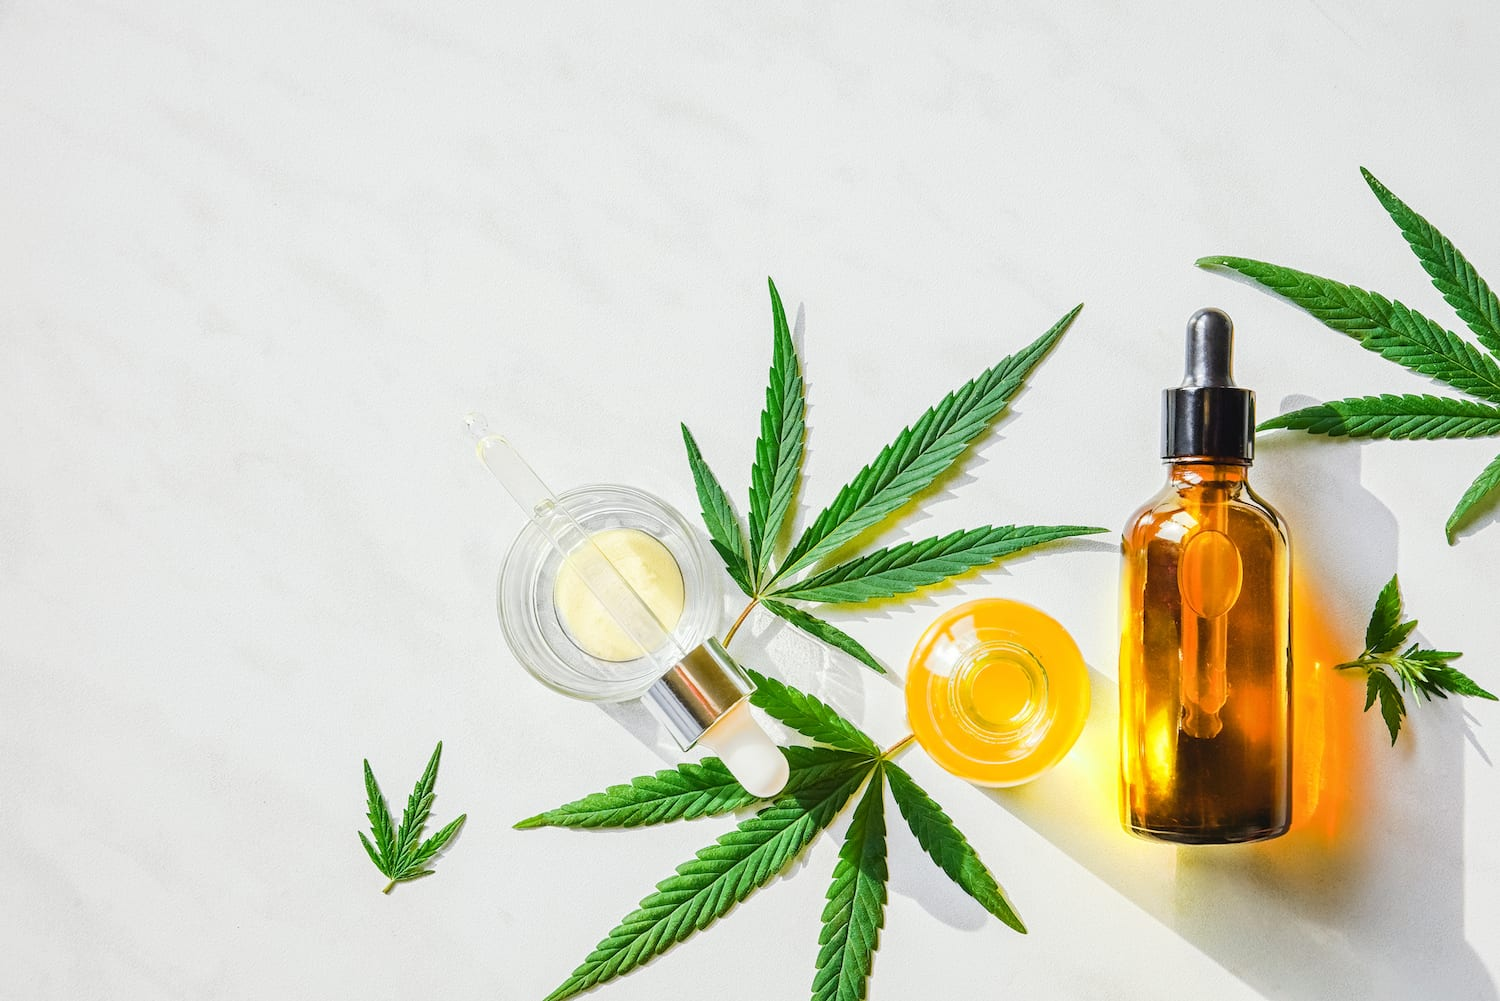 CBD oil and marijuana leaves